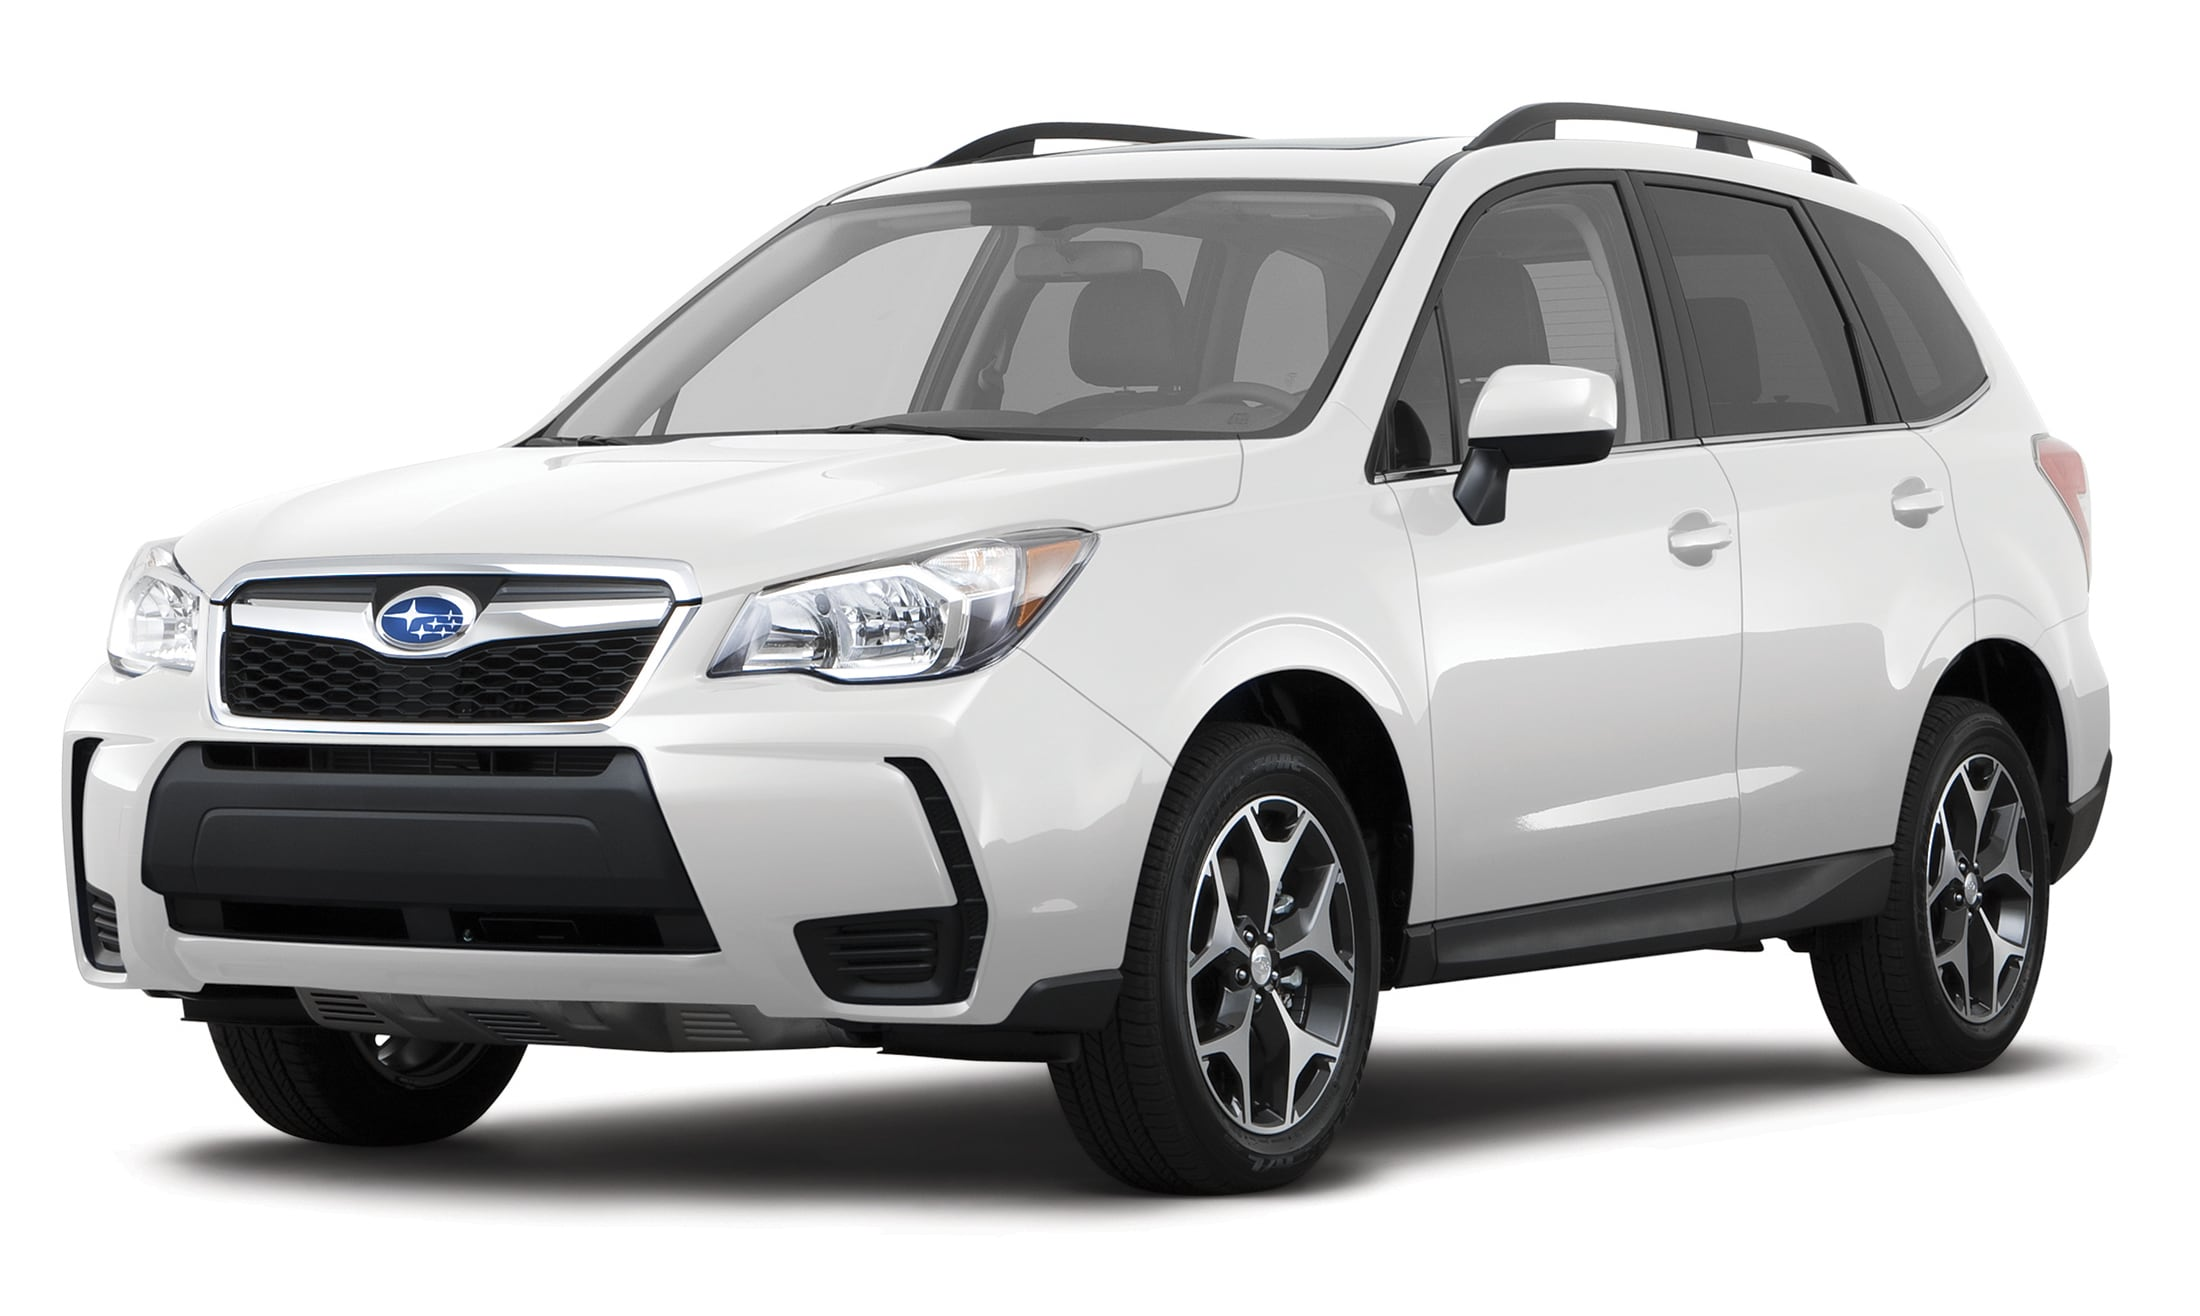 2014 subaru forester trim levels and options - twin city subaru